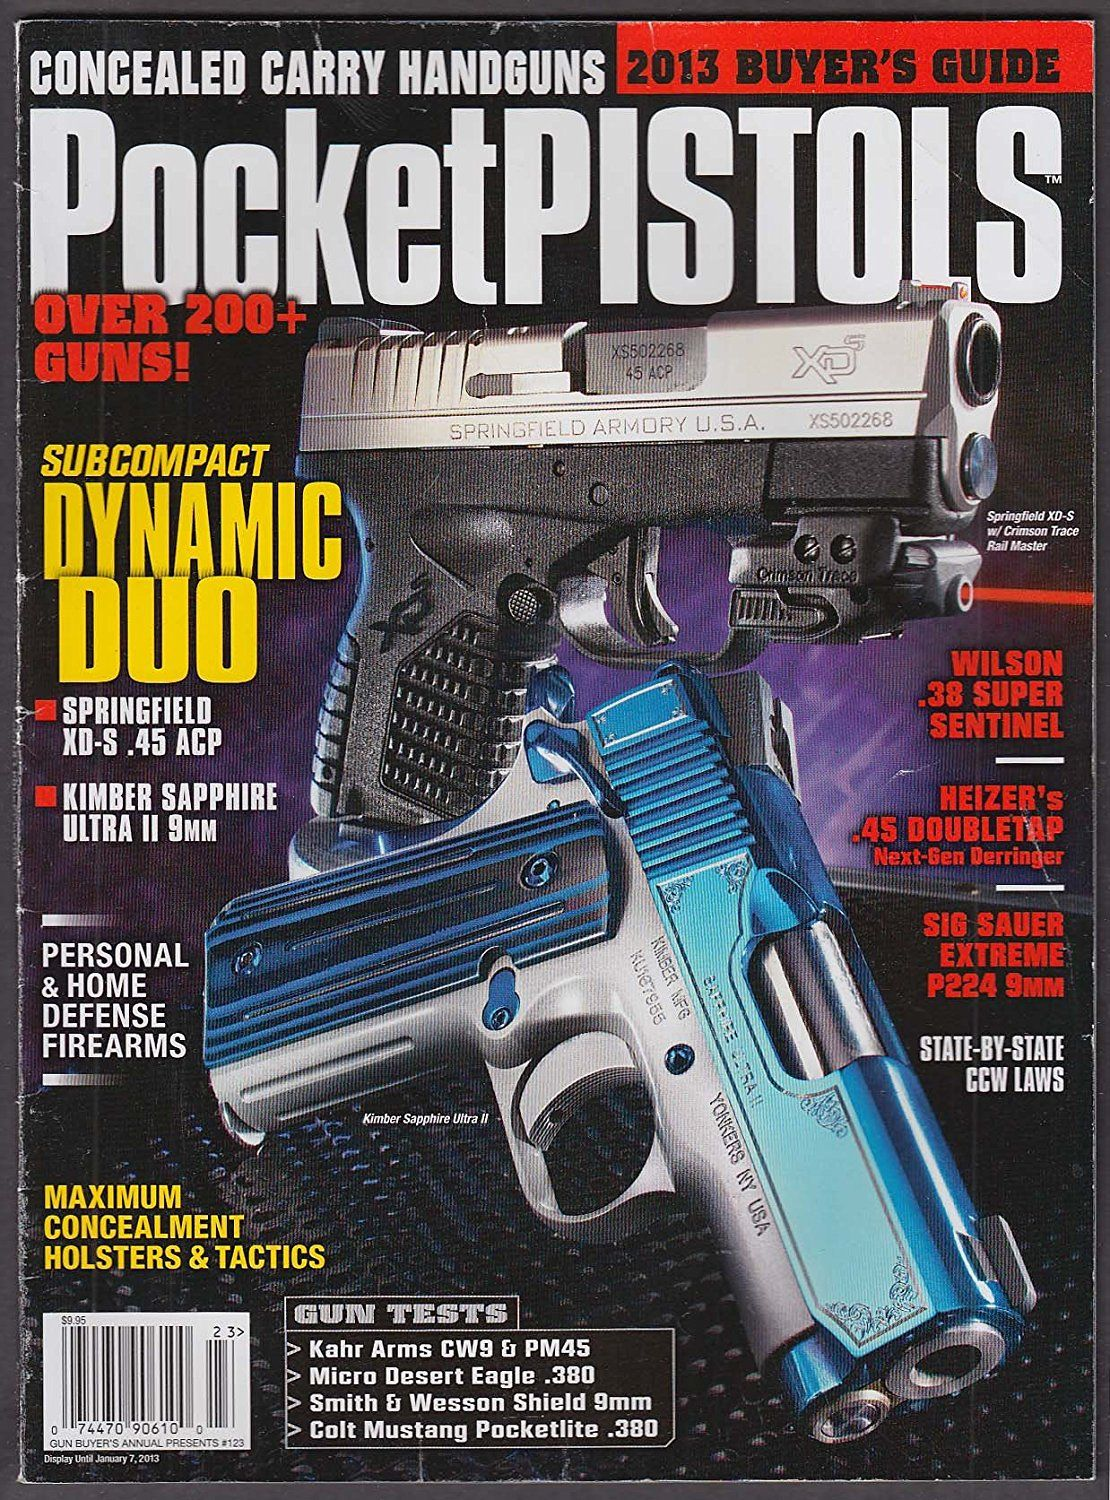 pocket pistols 2013 buyer s guide springfield xd s kimber sapphire rh pinterest com Central Wisconsin Buyer's Guide Stevens Point Buyer's Guide